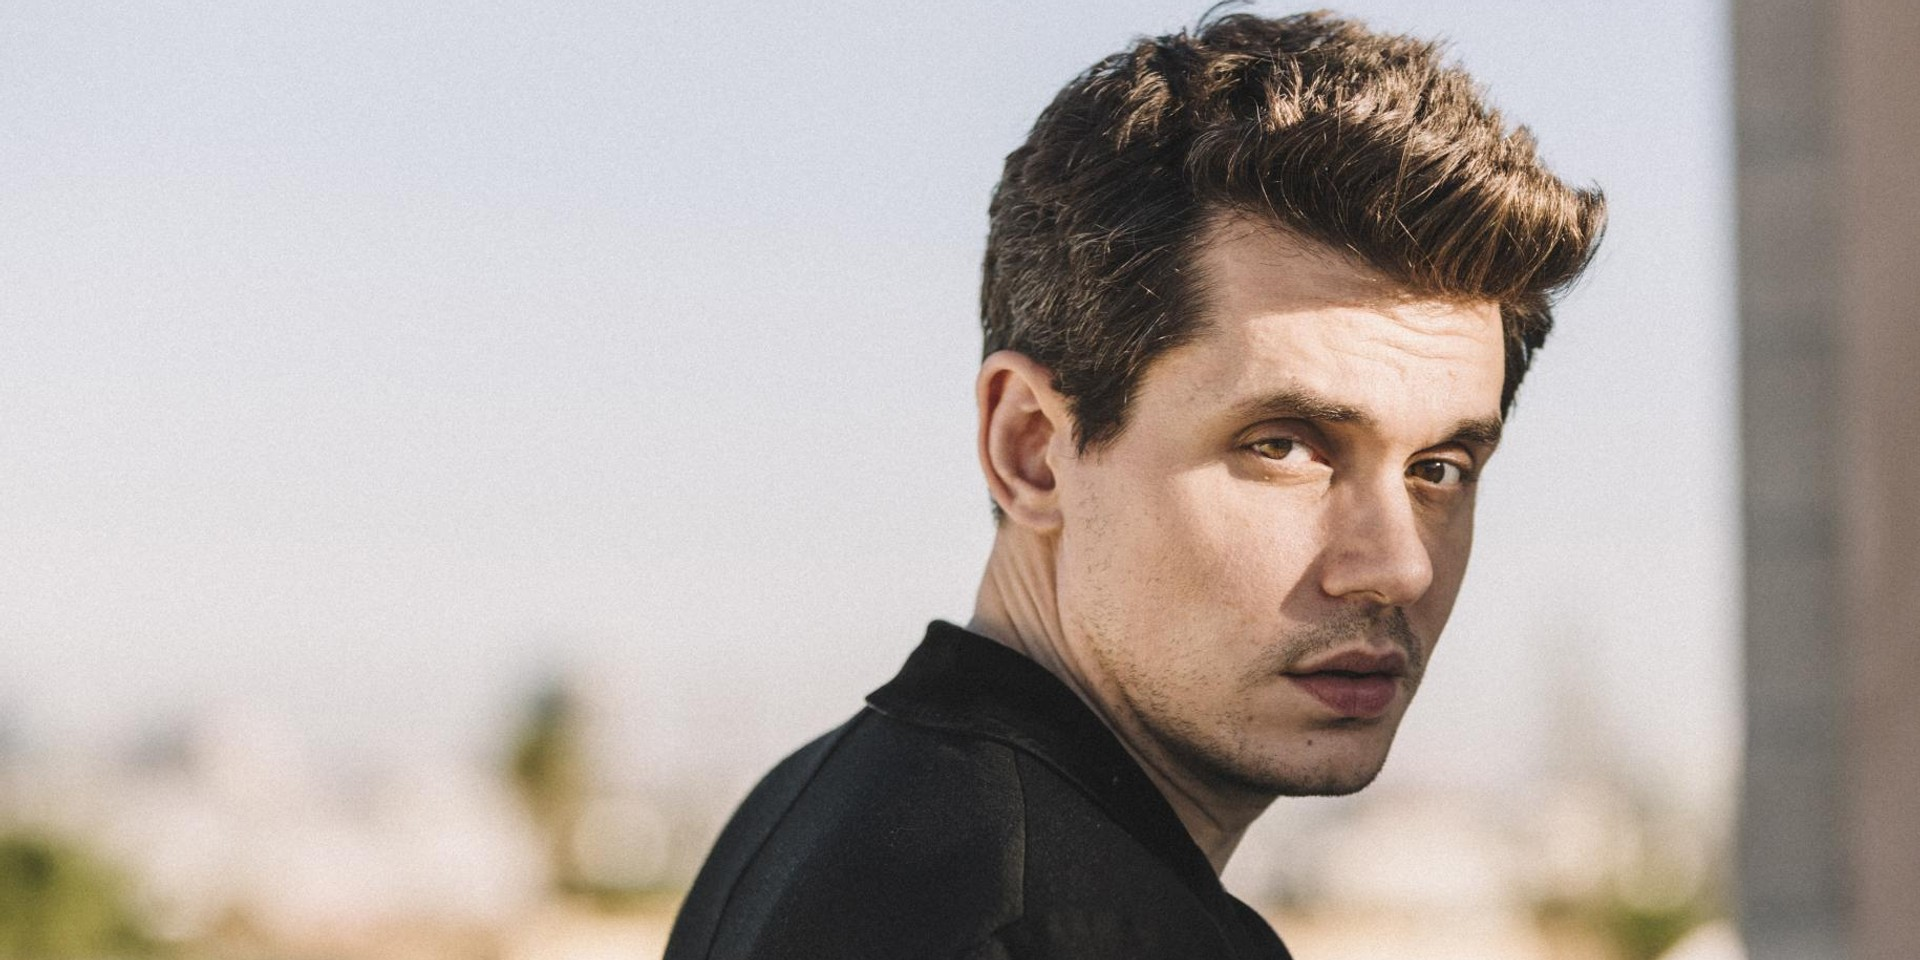 John Mayer's concert in Singapore is now sold out